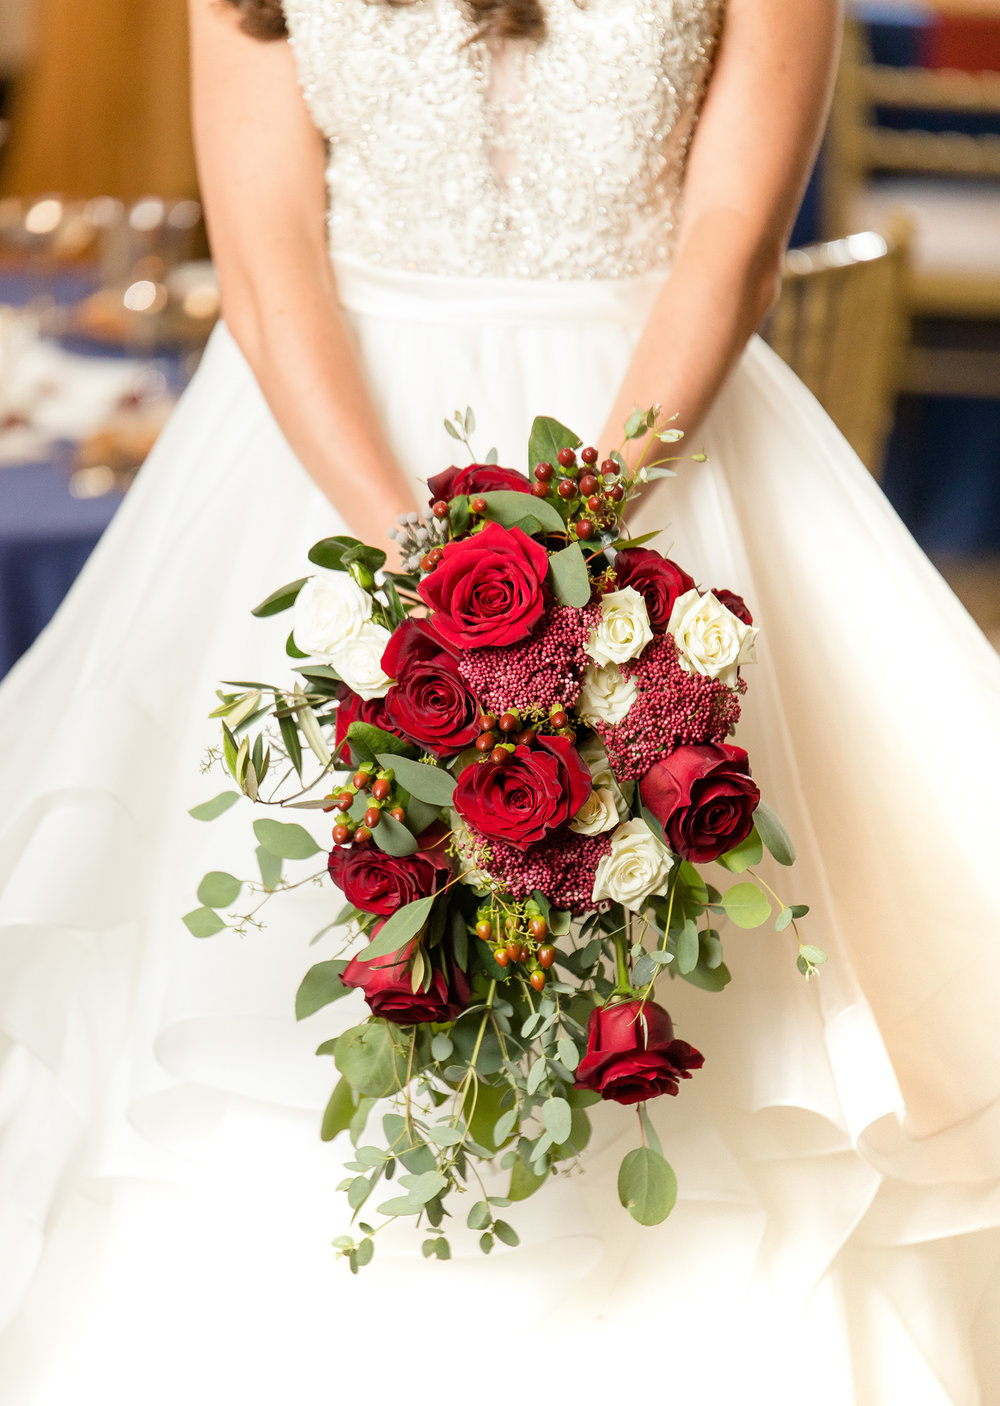 Beauty and the Beast Wedding Bouquet - Better Together Photography